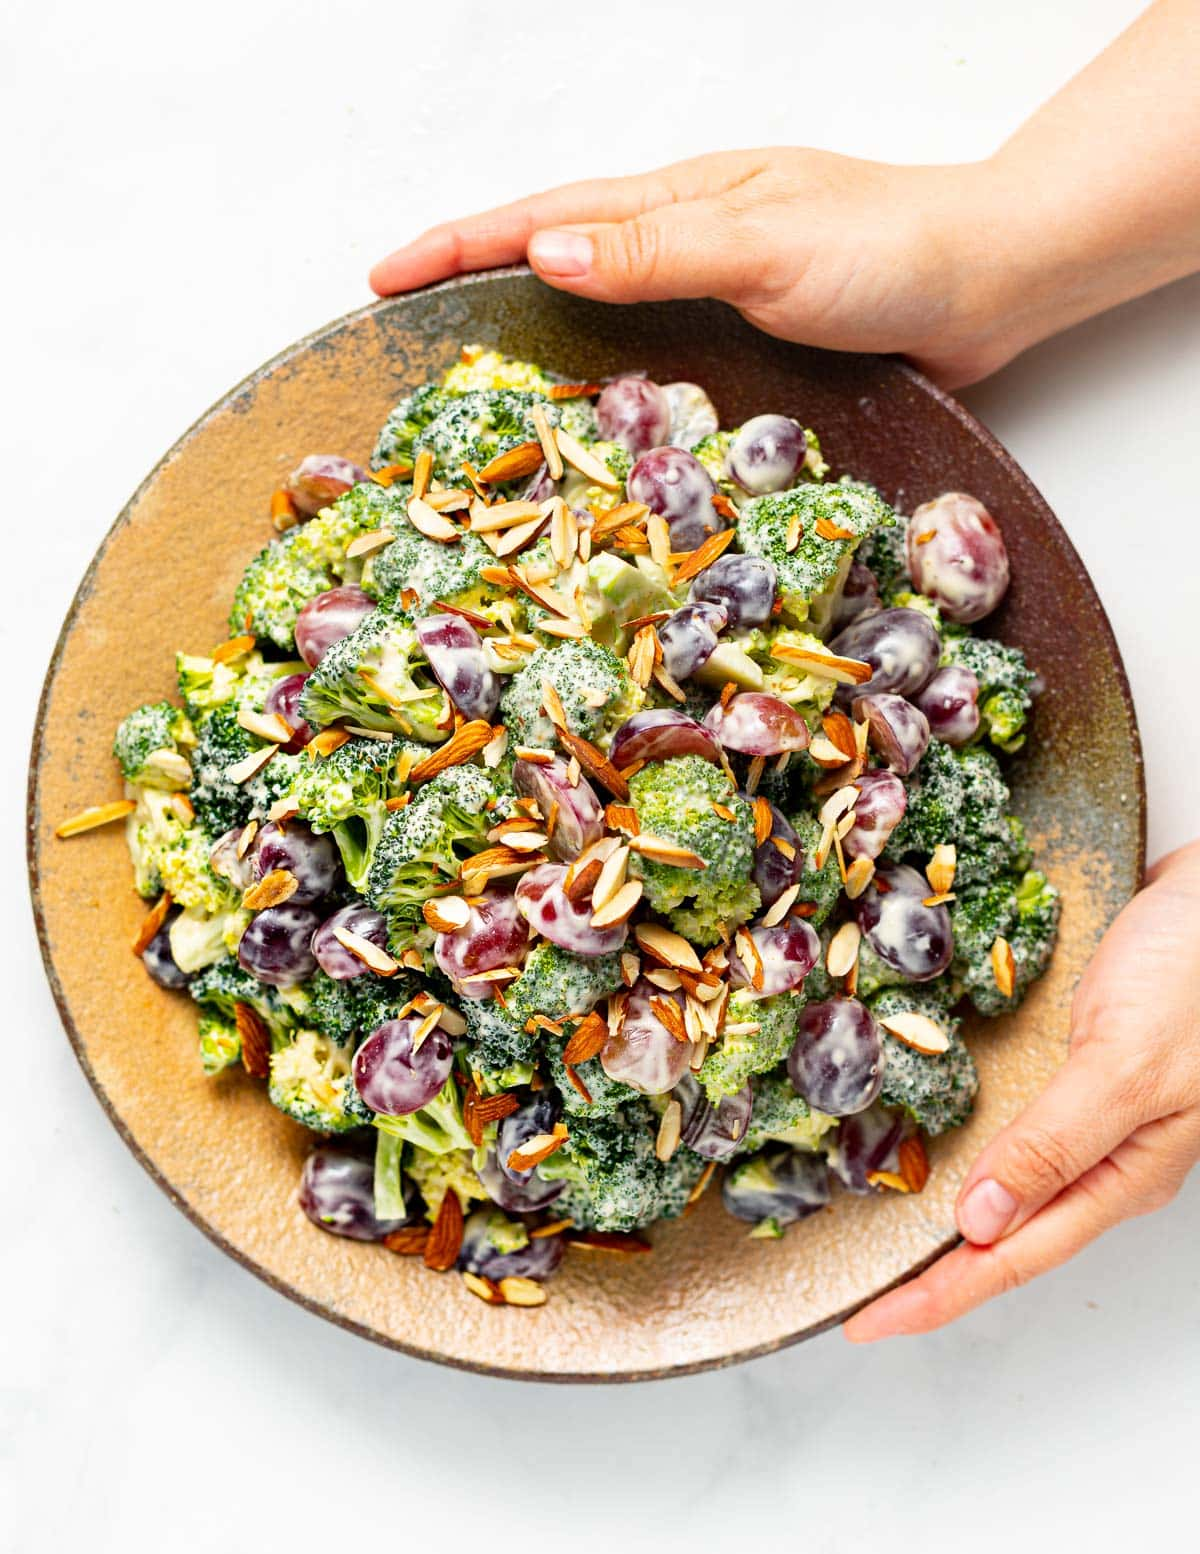 hands holding a rustic plate filled with vegan broccoli salad